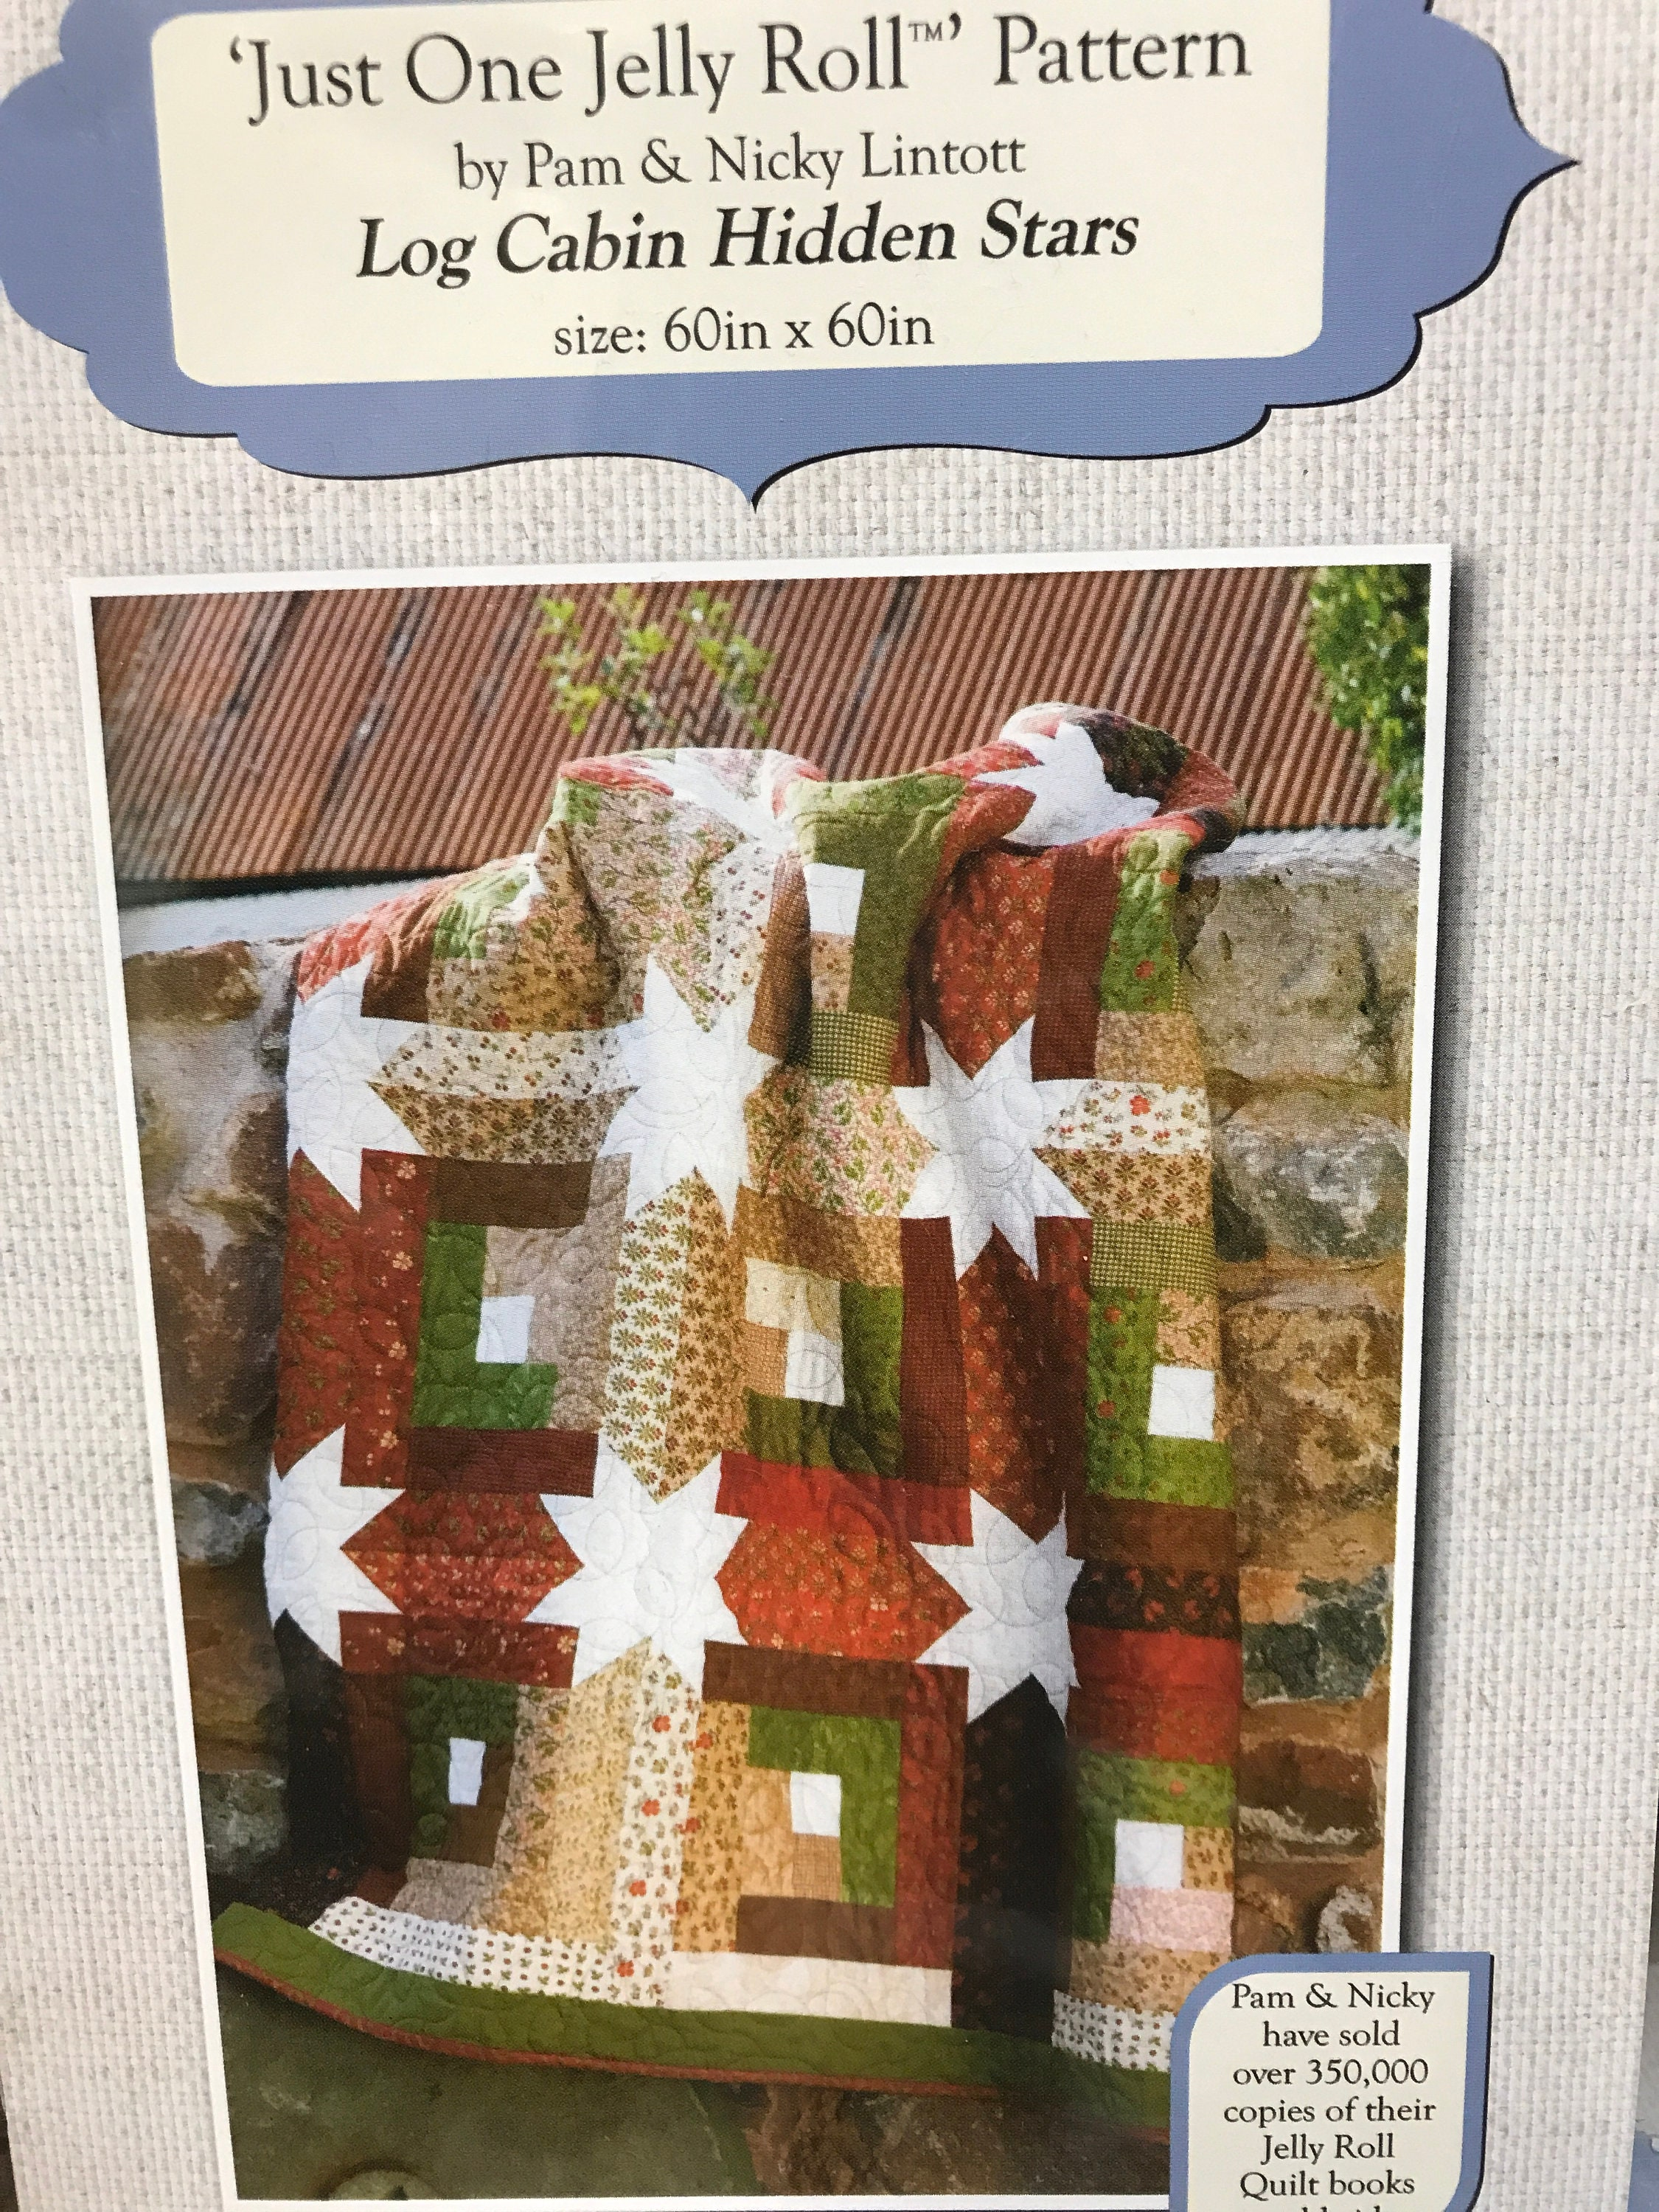 Log Cabin Hidden Stars Quilt Kit Fall Colors Autumn Just One Jelly